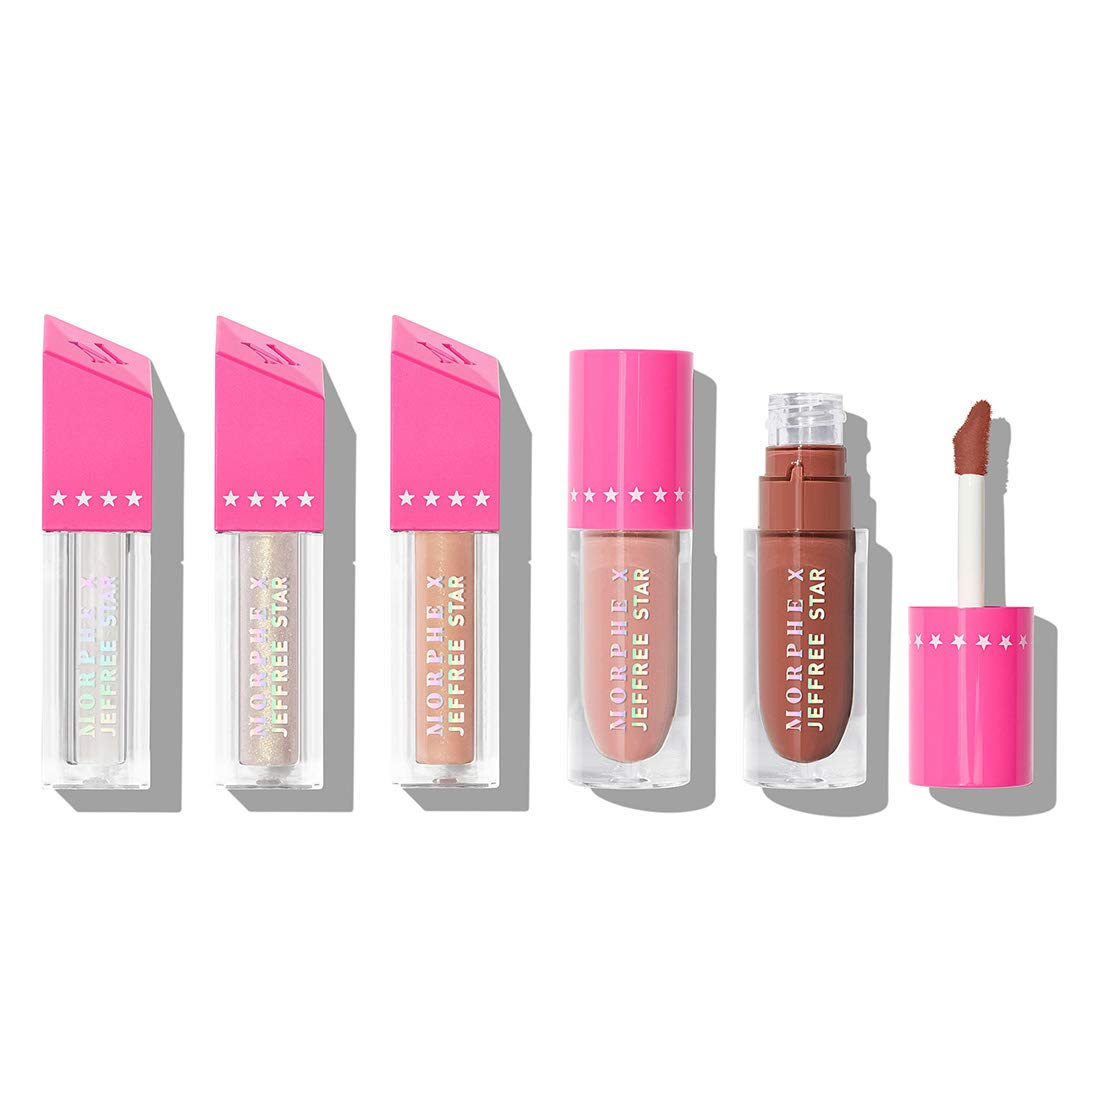 Morphe X Jeffree Star Iconic Nudes Lip C Buy Online In Maldives At Desertcart Morphe logo in expanded mobile menu. morphe x jeffree star iconic nudes lip collection 5 piece set liquid lipstick gloss and topper liquid lippies meet high shine glosses in one